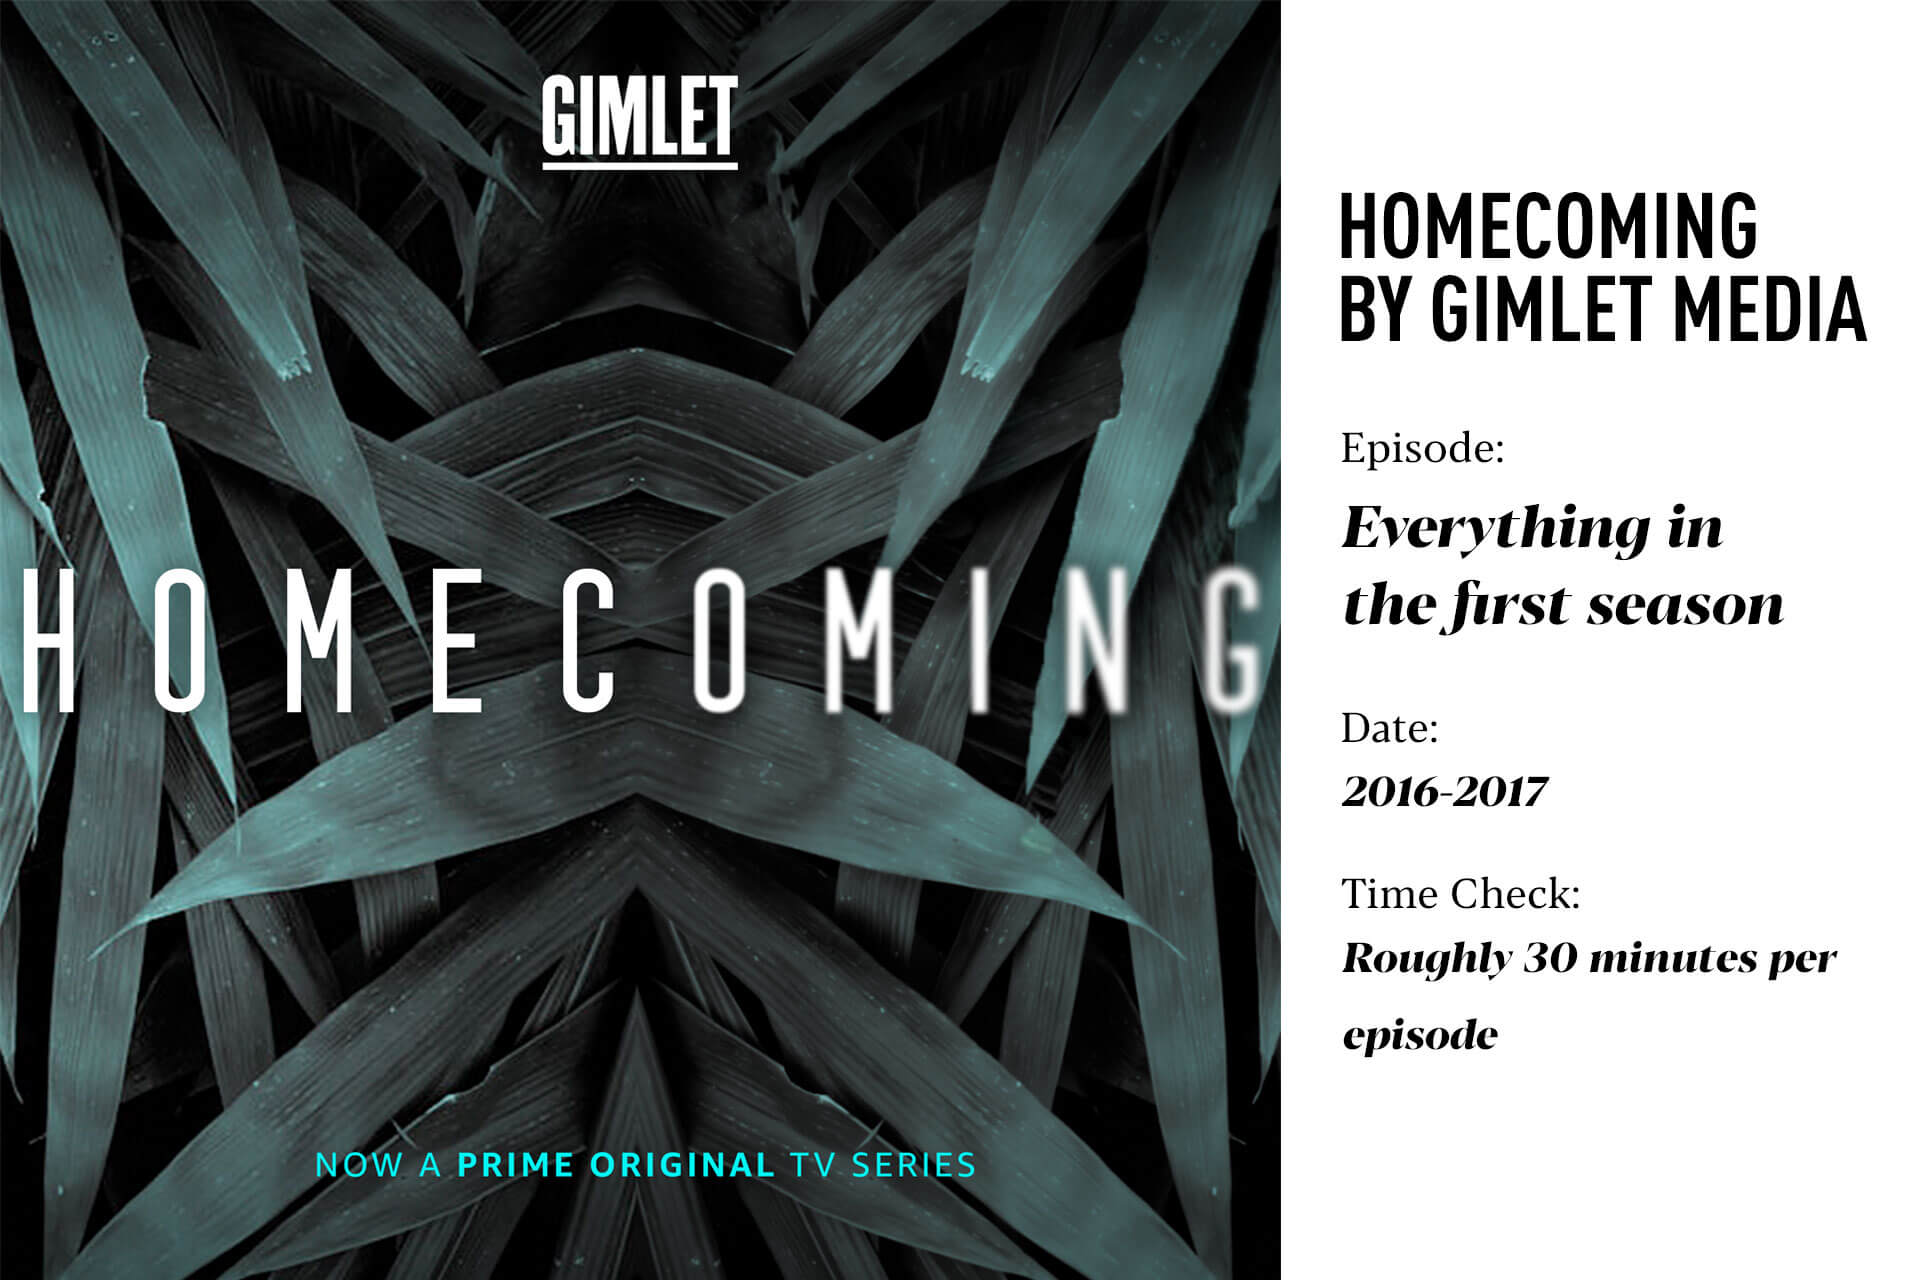 Homecoming by Gimlet Media